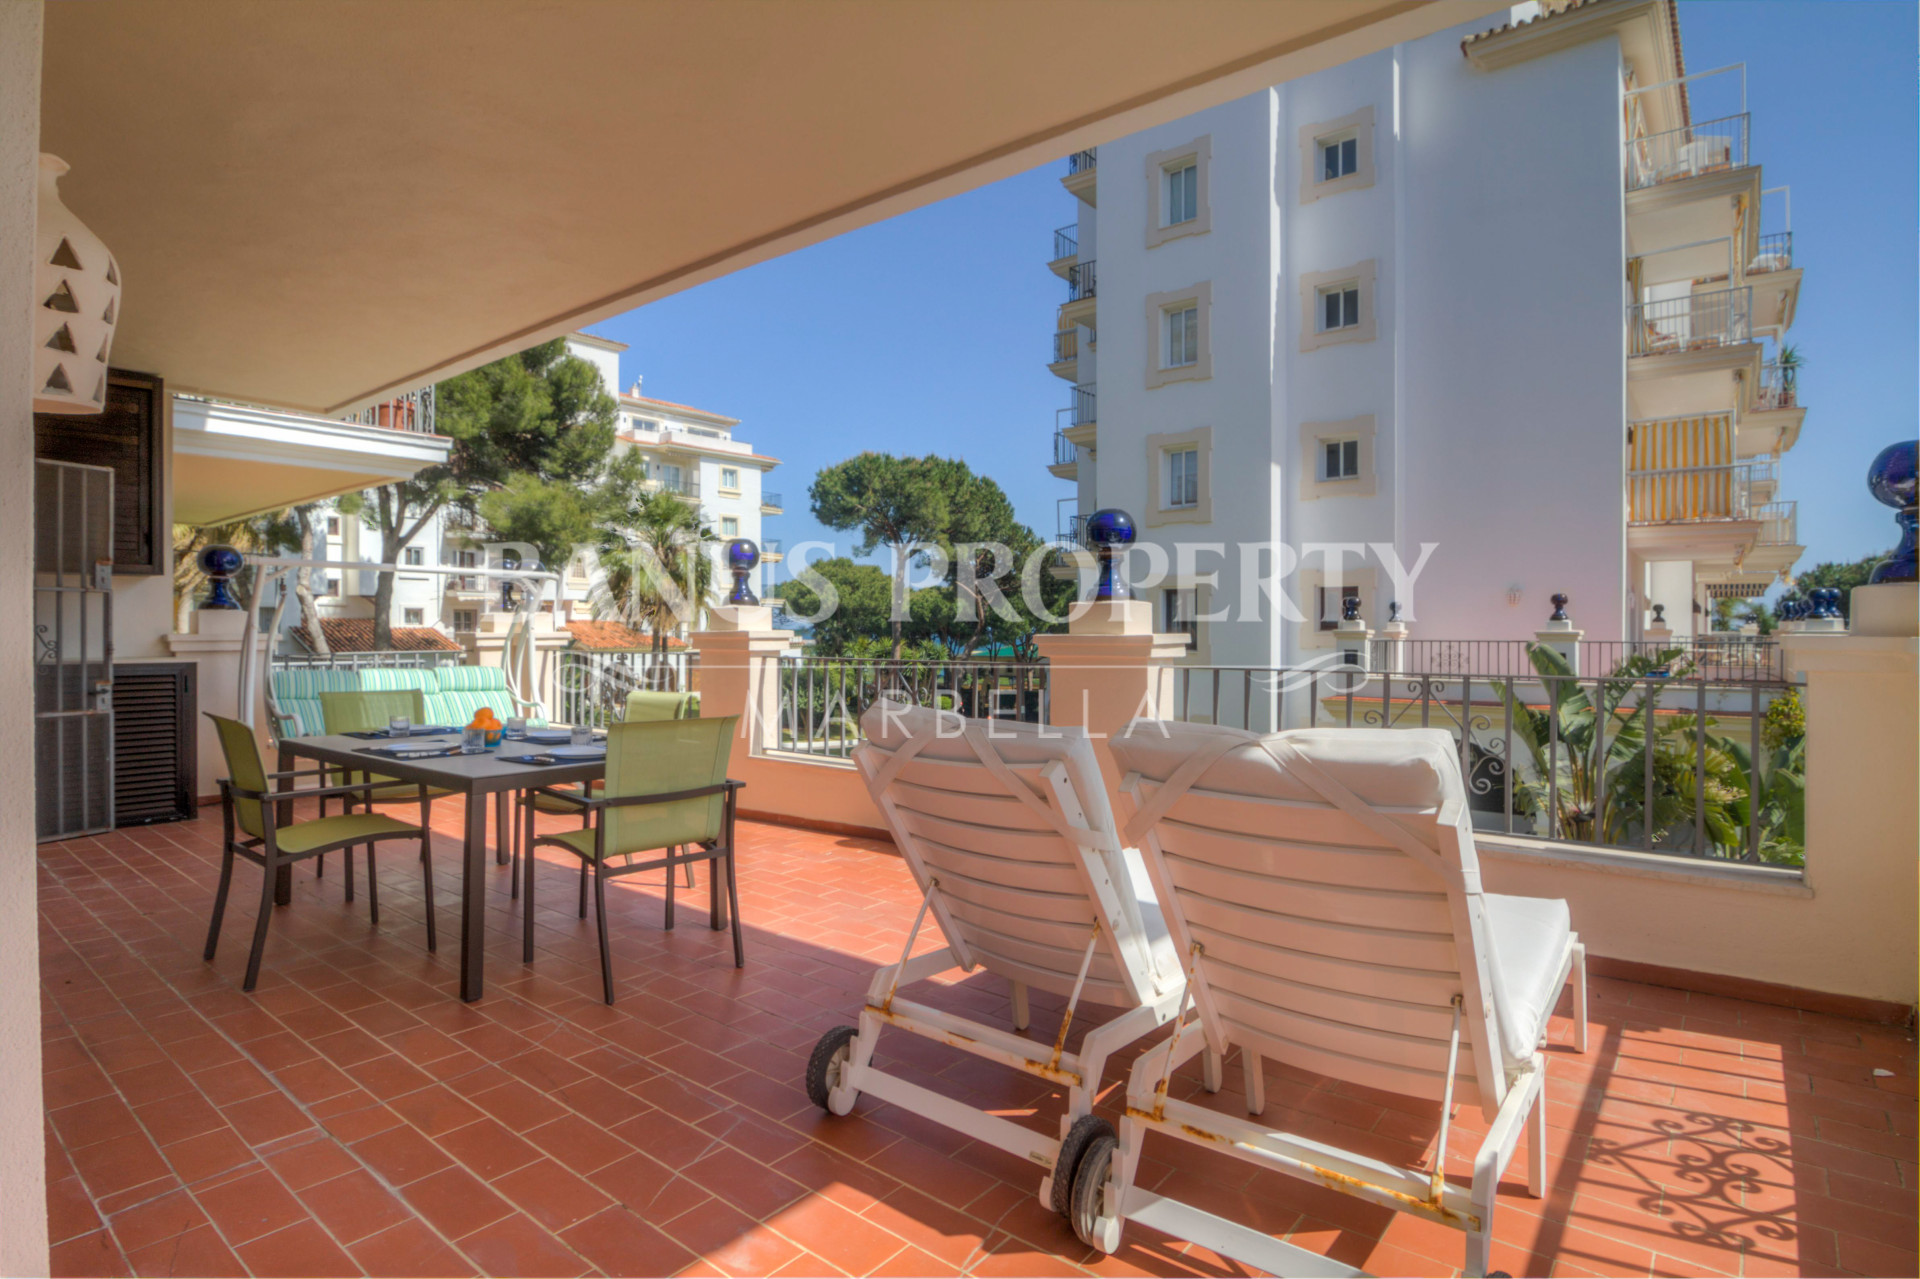 1 Bedroom apartment in Andalucia del Mar